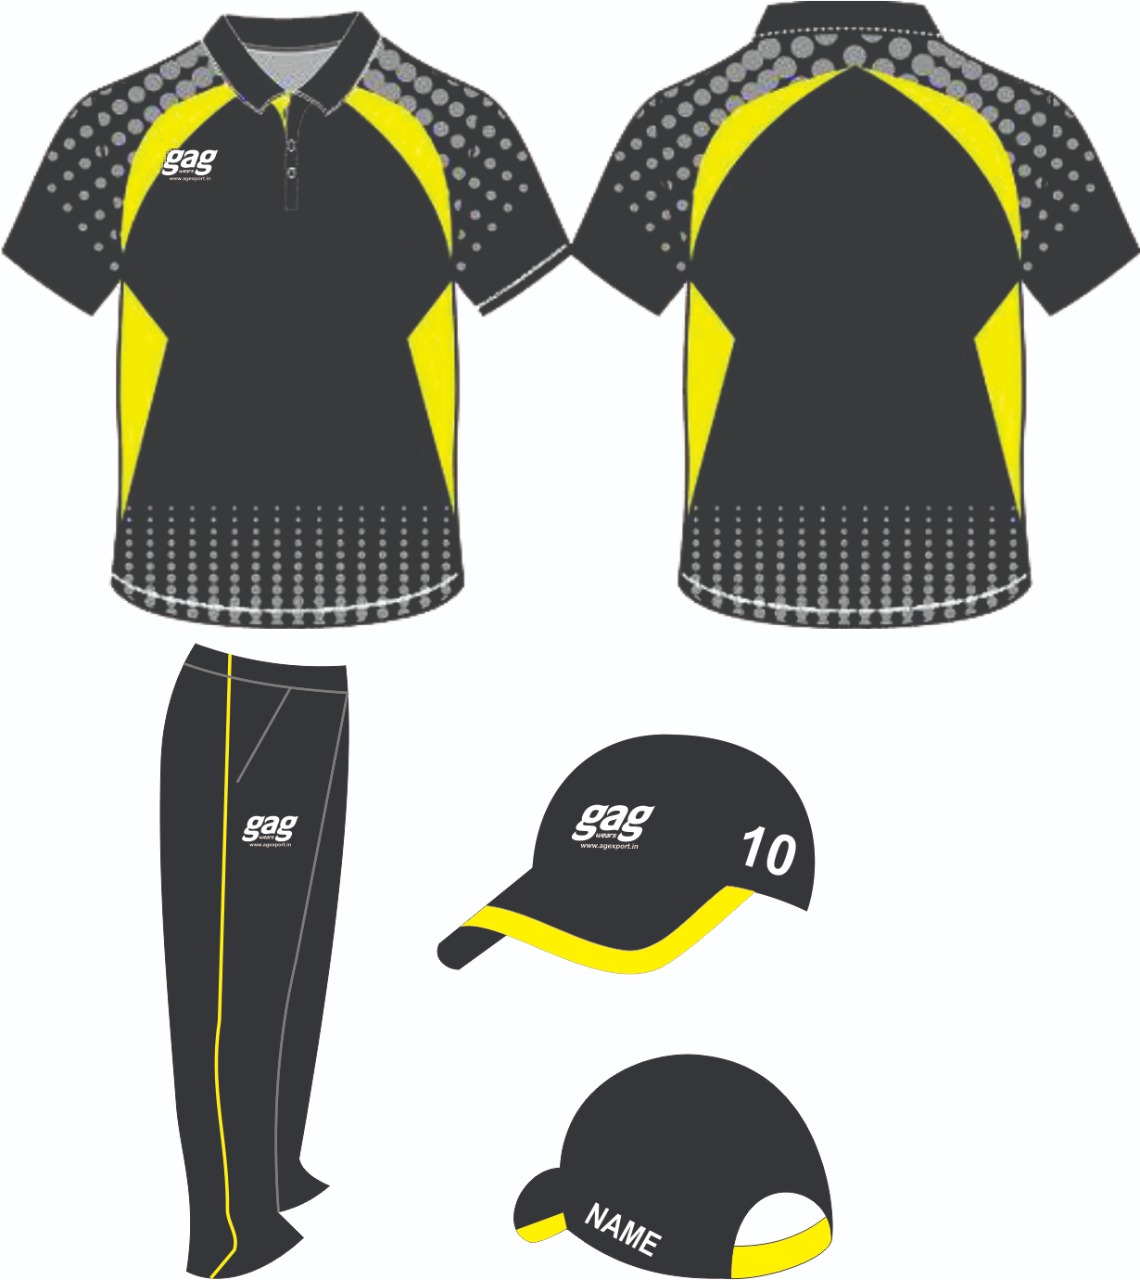 Cricket Uniform Manufacturers and Exporters in Mysore